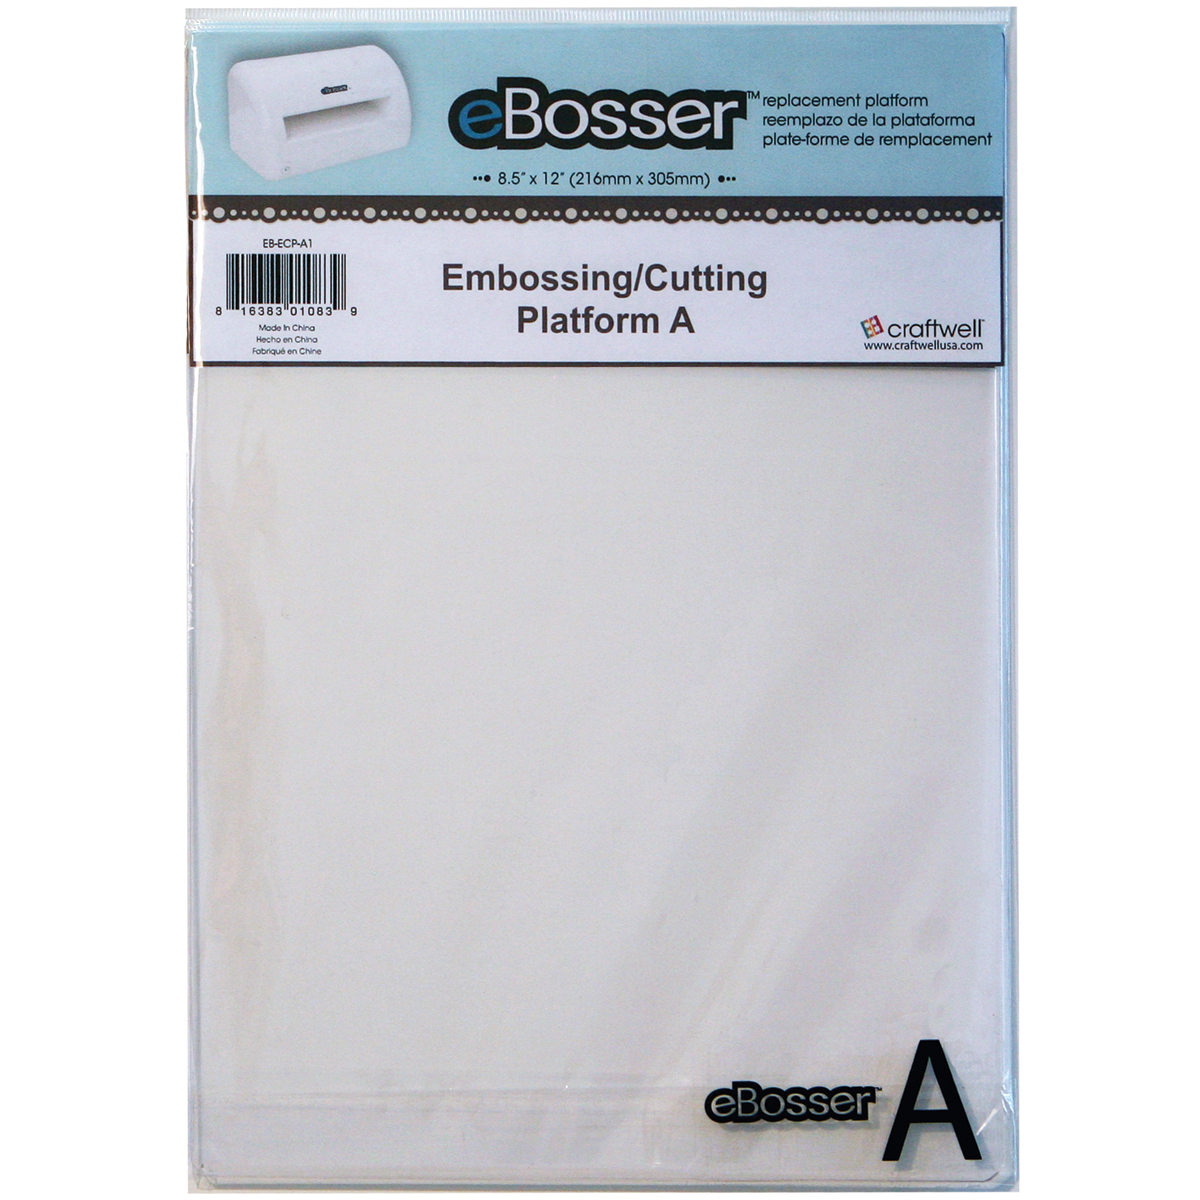 eBosser Embossing/Cutting Platform A 8.5 x 12 in.